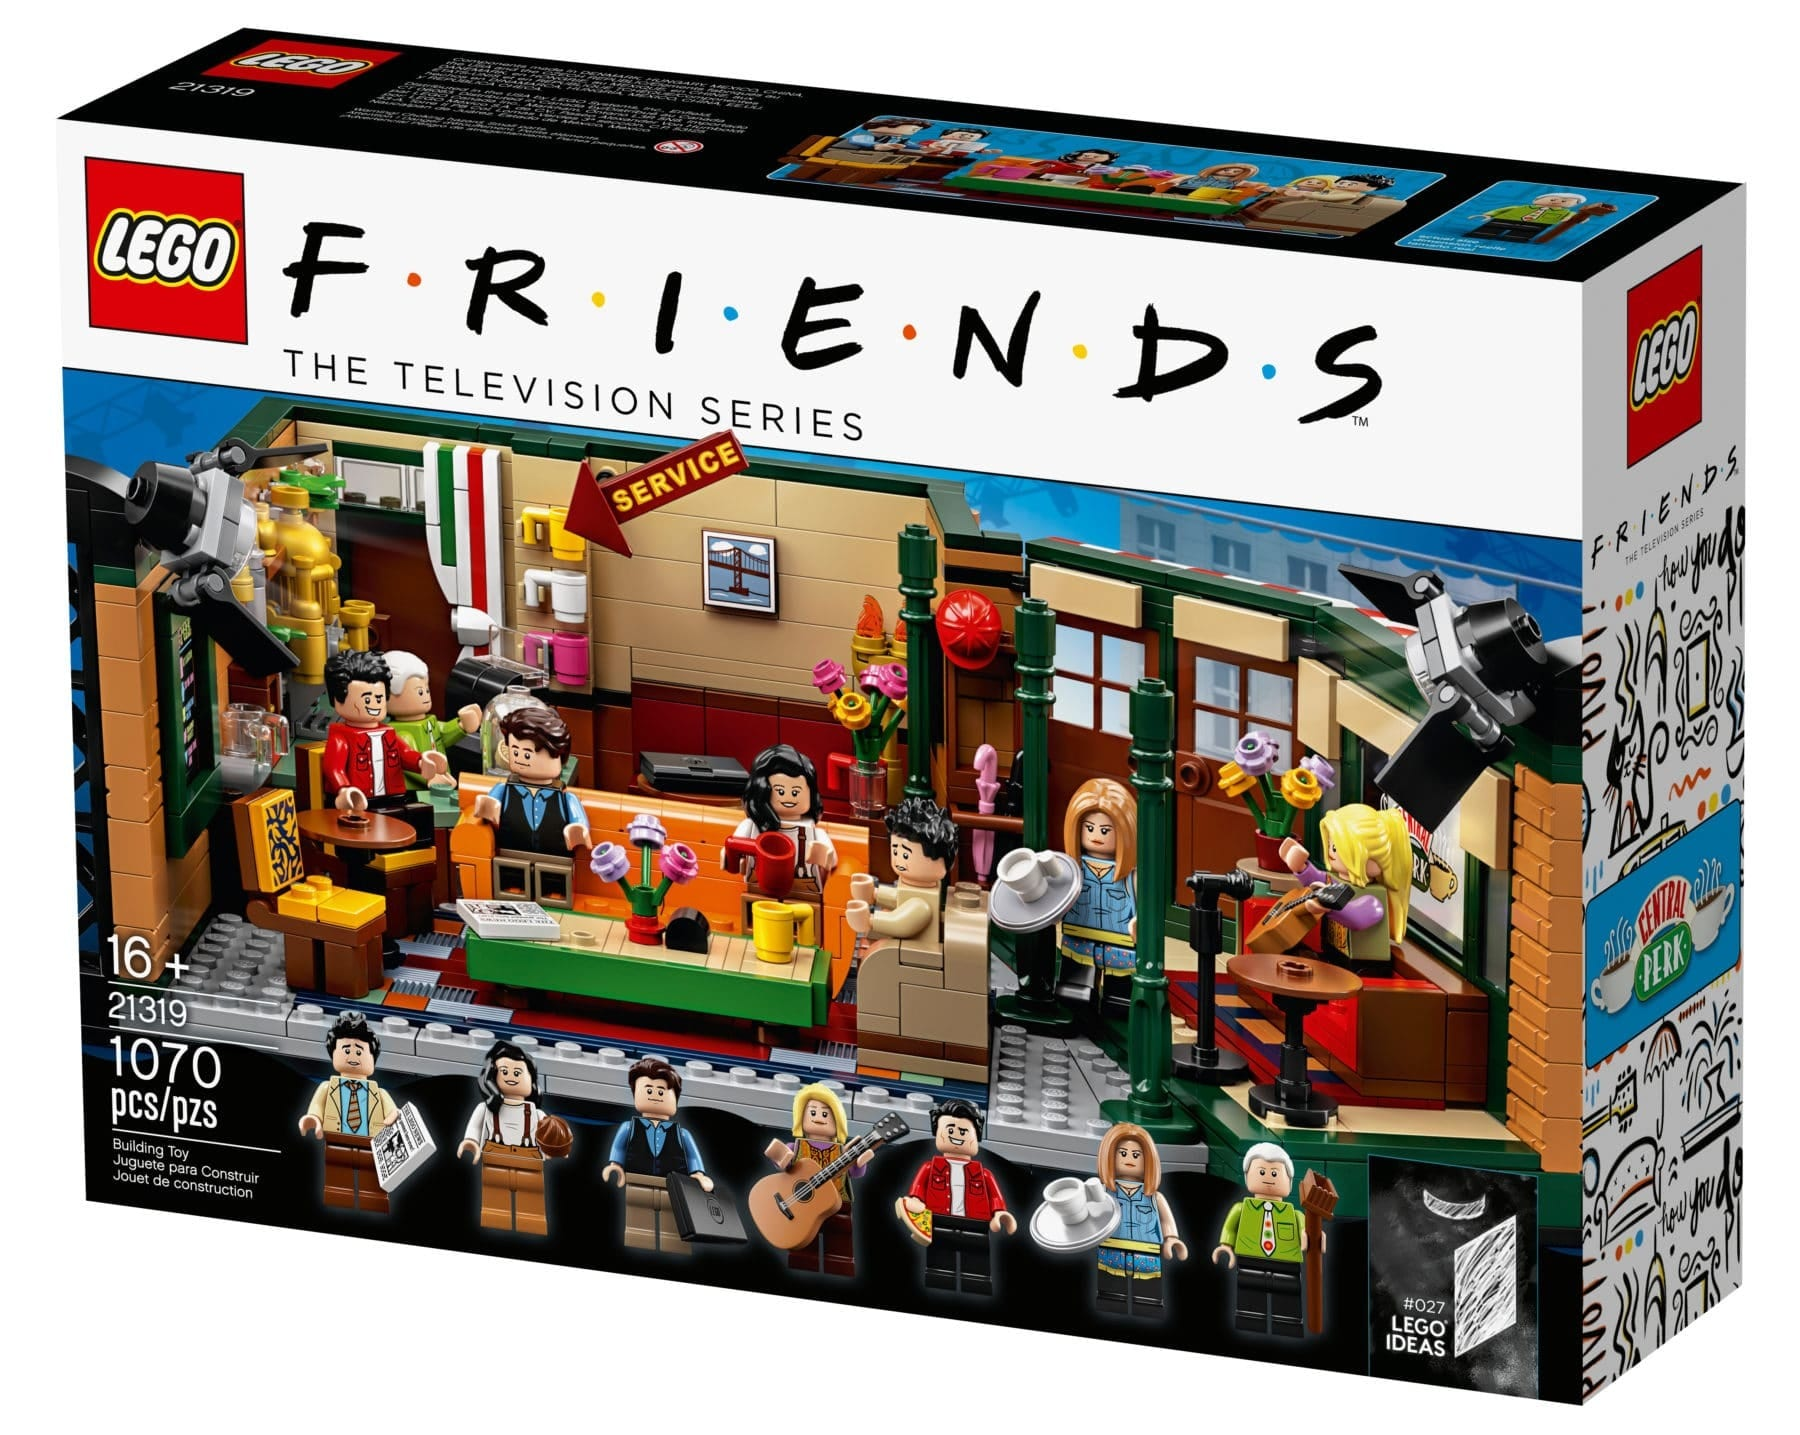 LEGO 21319 Friends (1)